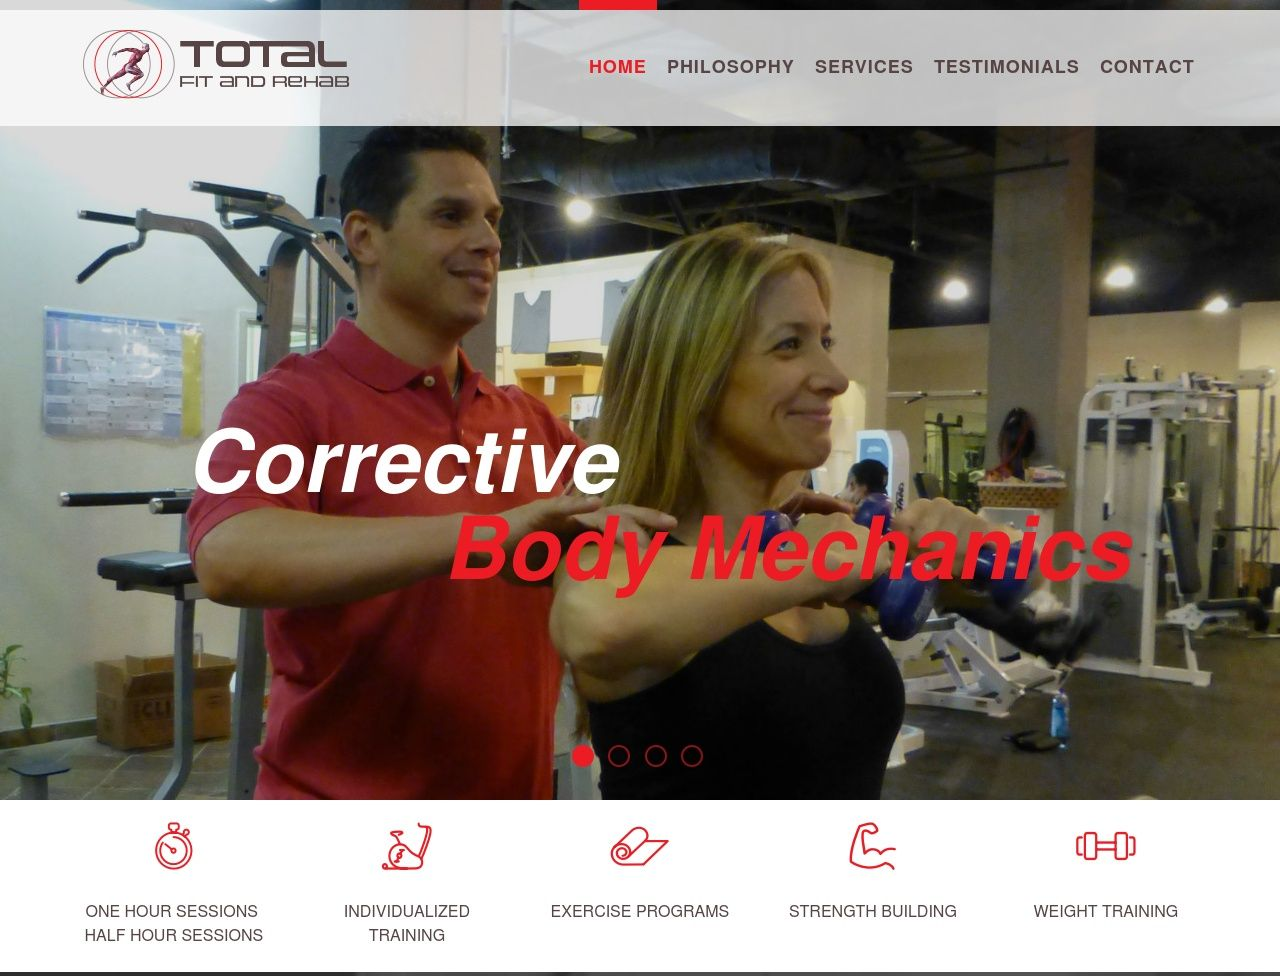 Total Fit and Rehab